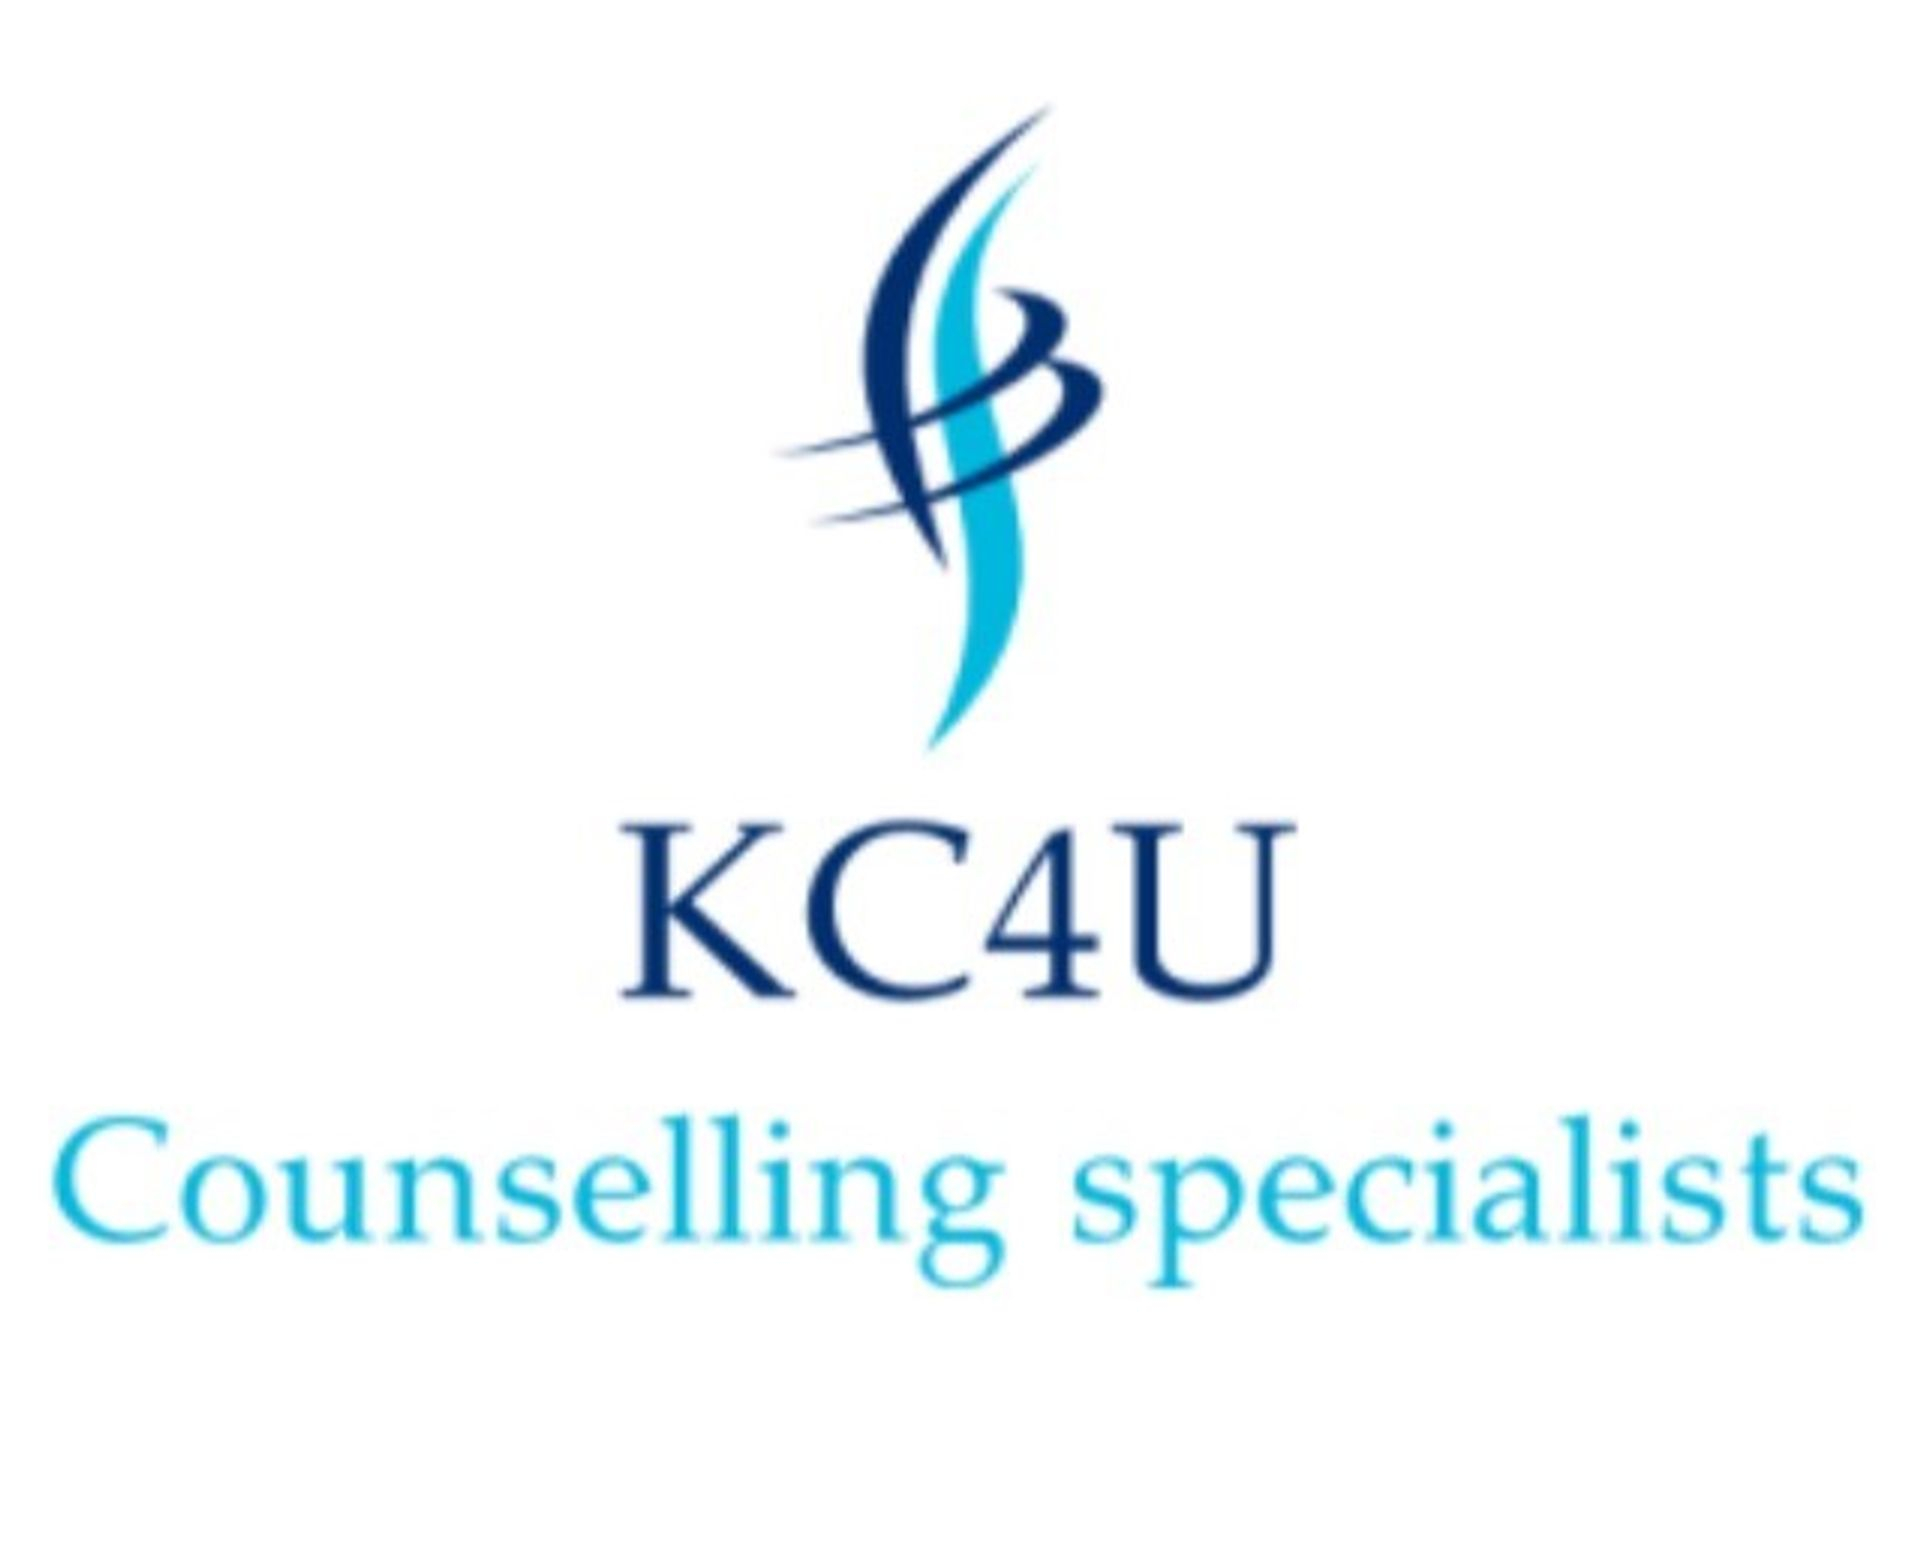 KC4U The autism specialists